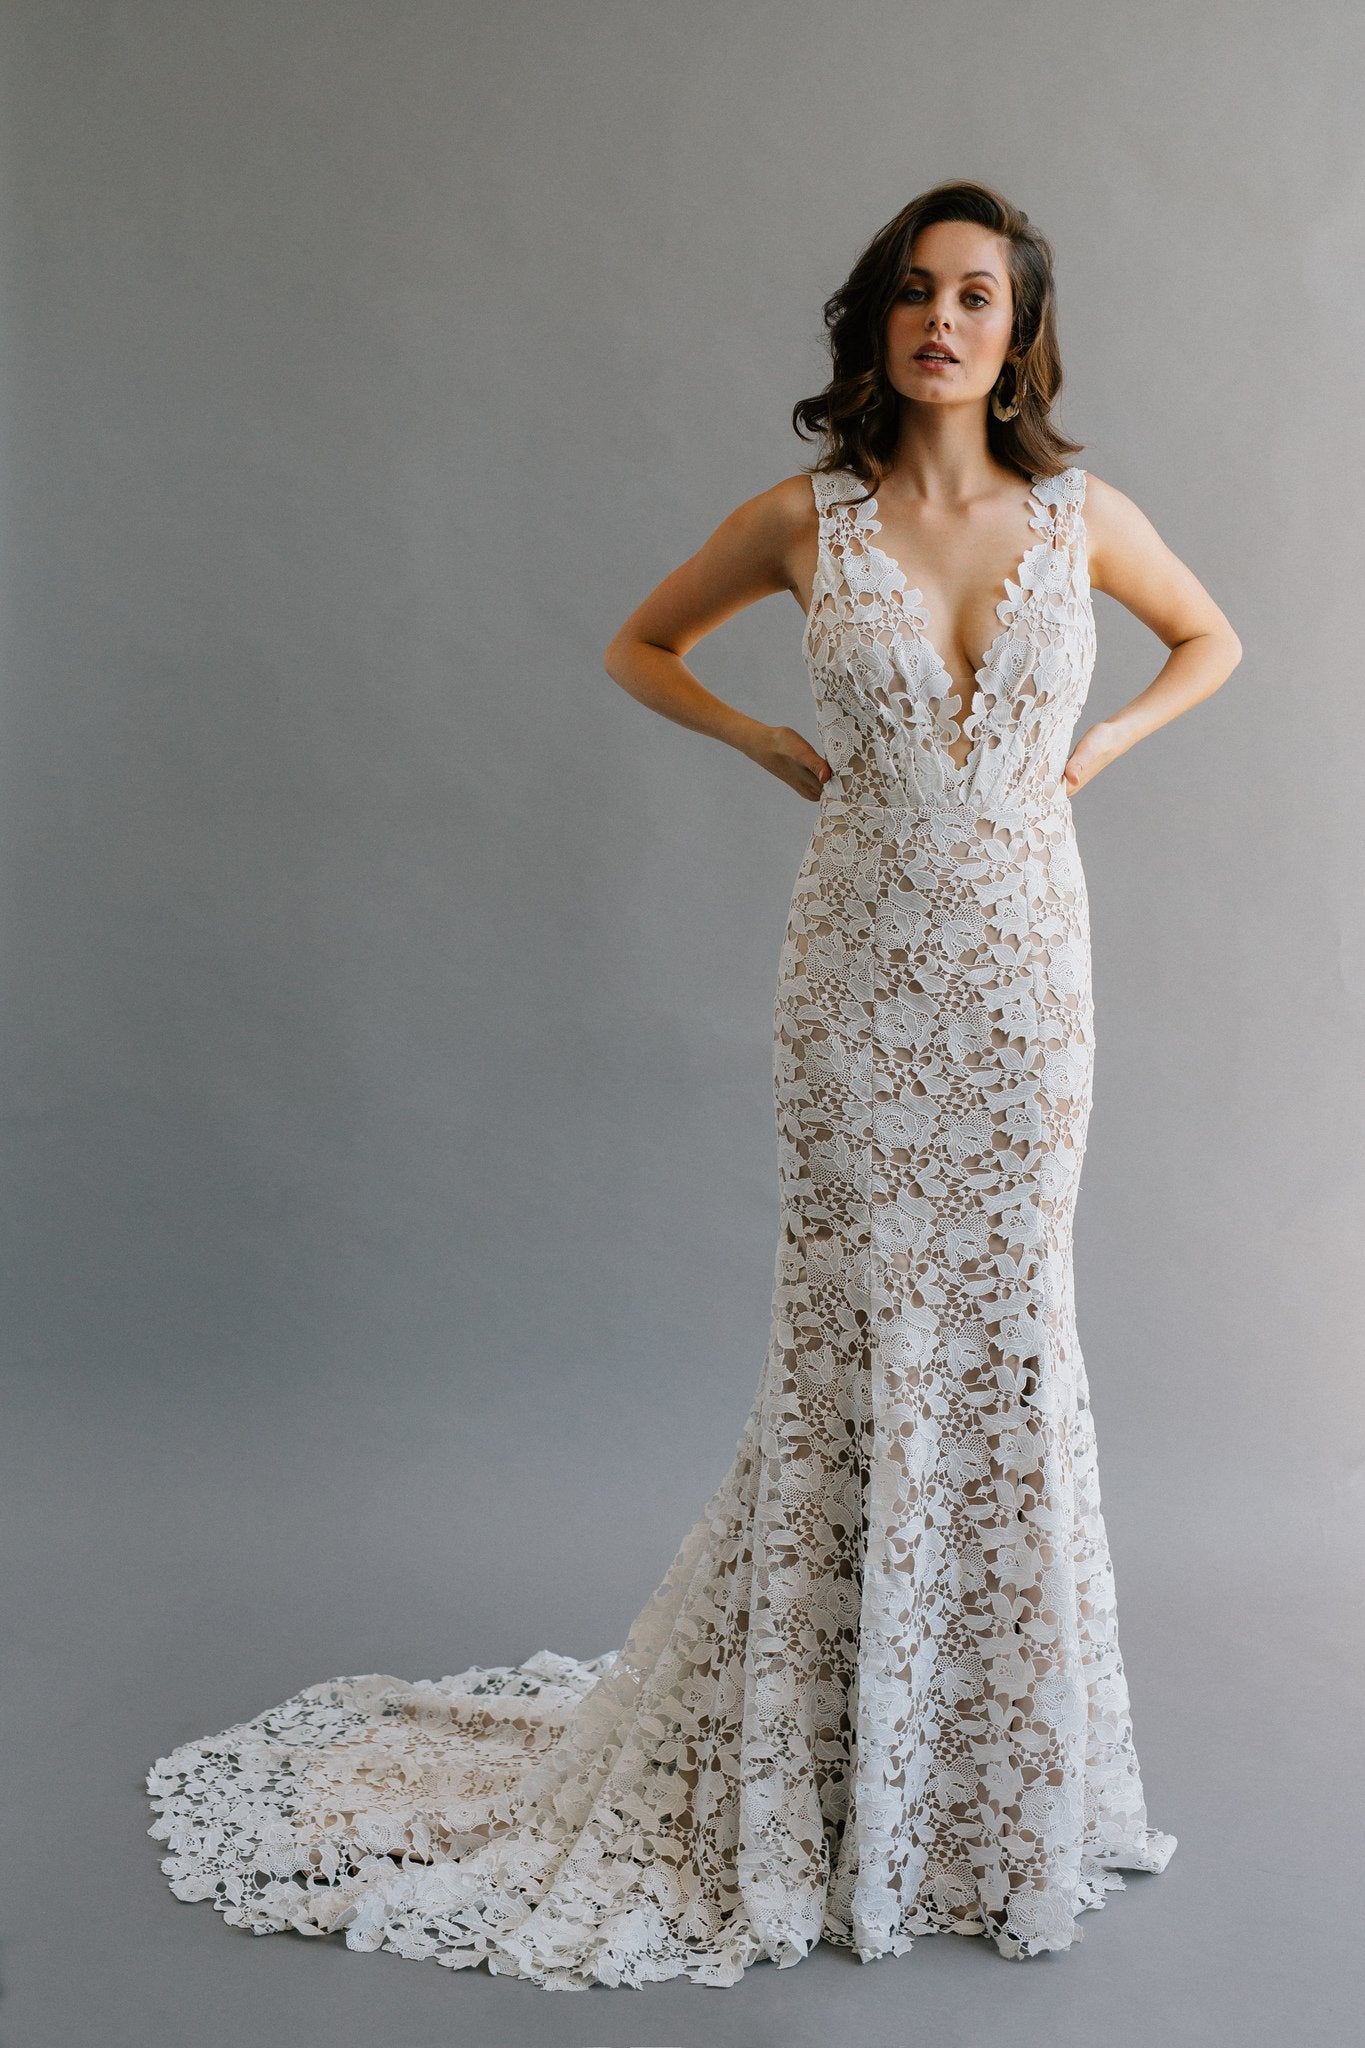 Boho mermaid wedding dress with nude lining and off white lace overlay